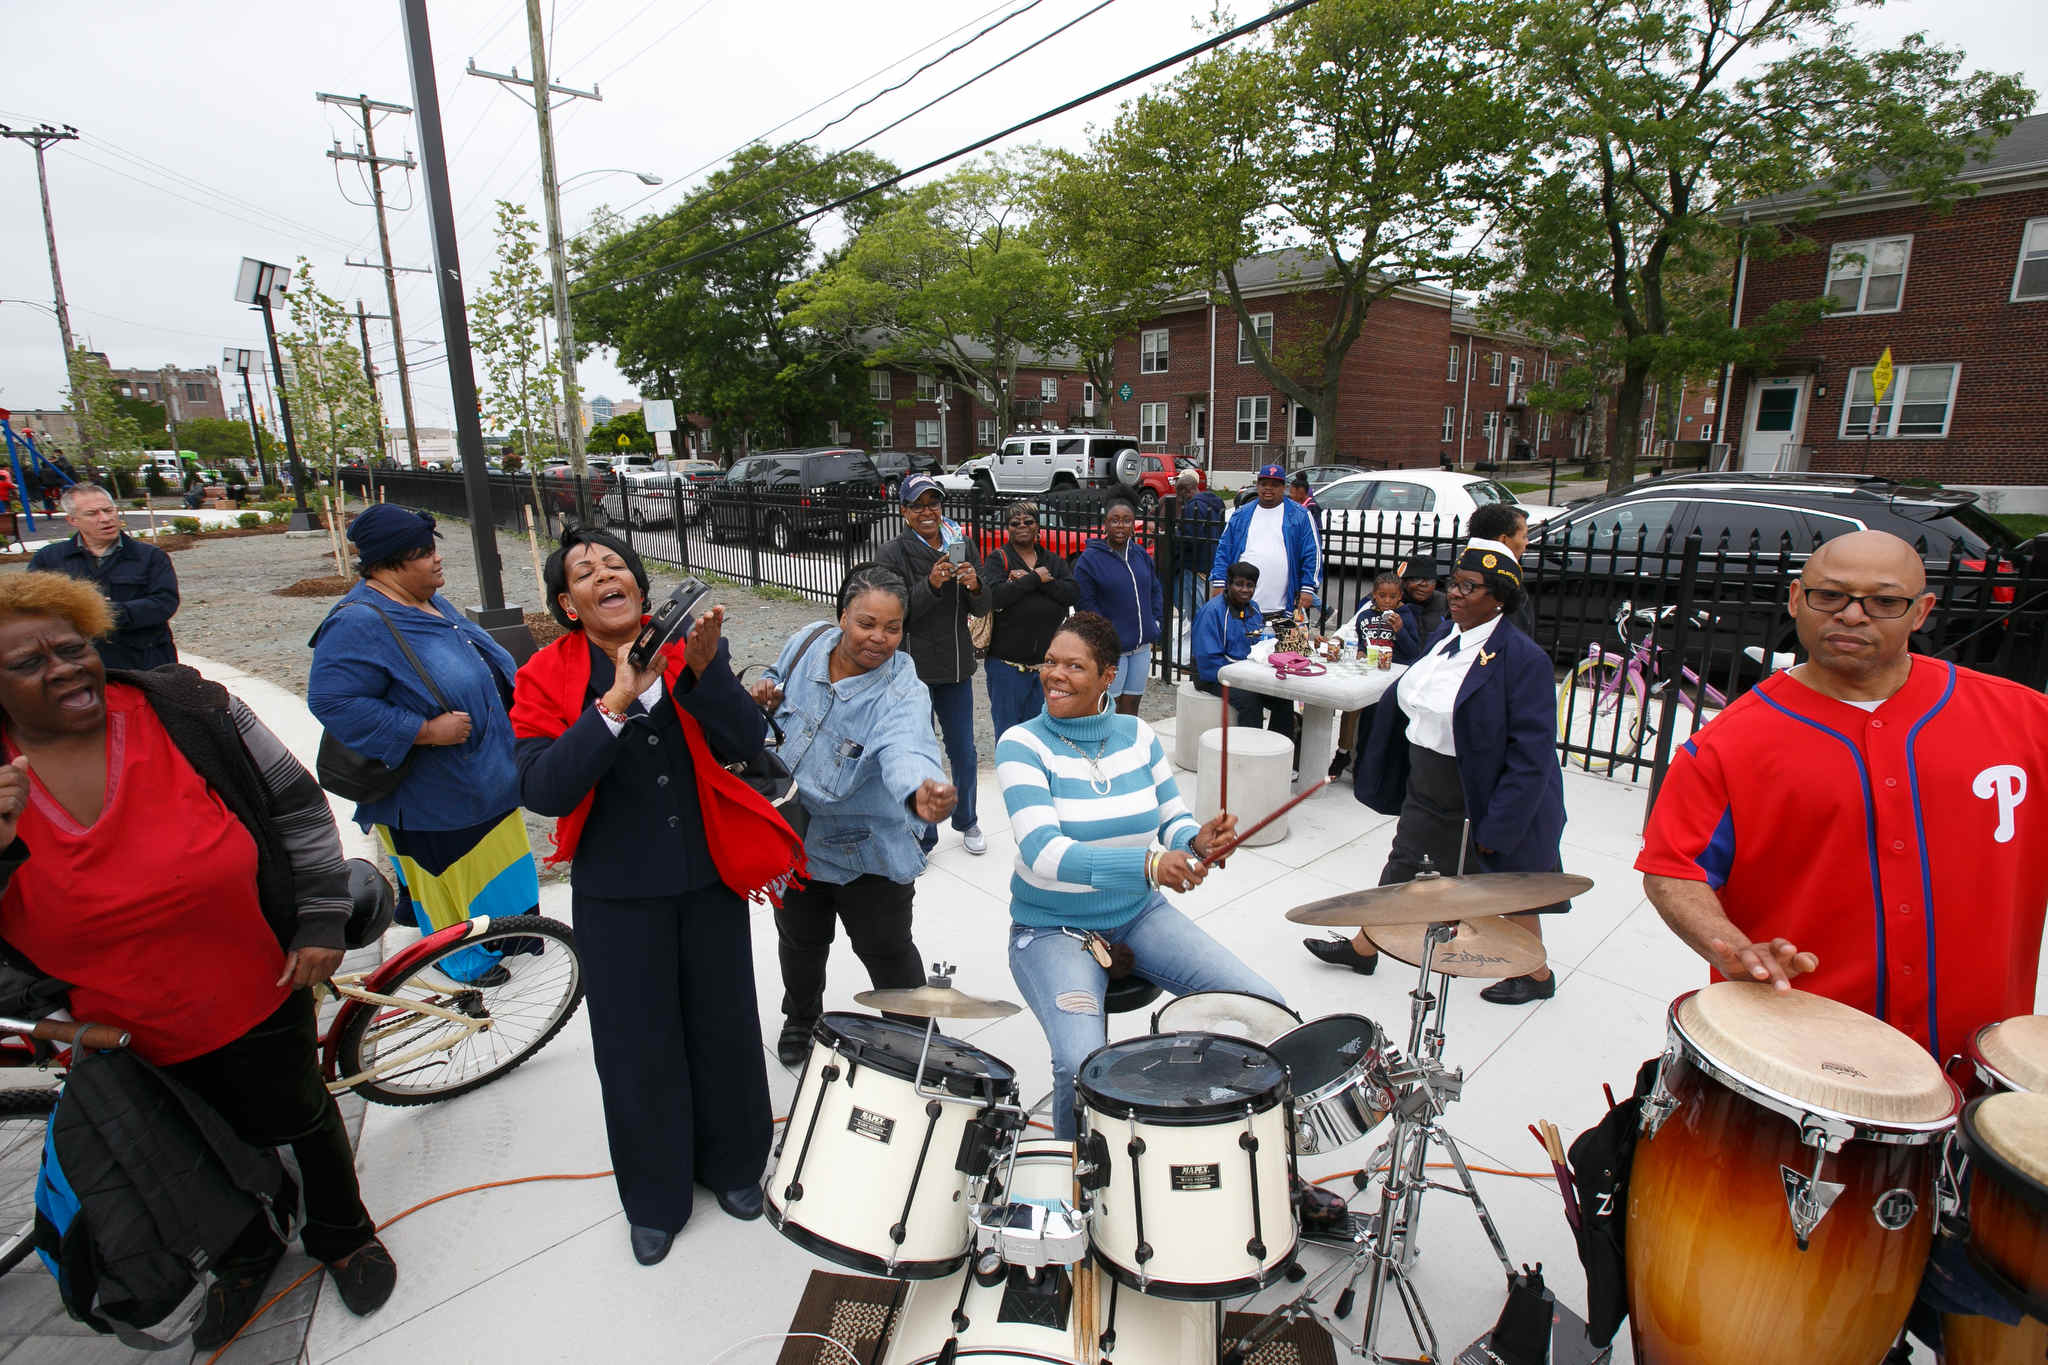 Margaret Brown plays the tambourine, Tamee Jones plays the drums, and Andrew Coley II, plays the drums, at the official reopening of the Harold R. Brown Memorial Park, Monday, May 29, 2017, after a $1.5 million renovation. The park is named for the first African-American soldier from Atlantic City to die in World War II.